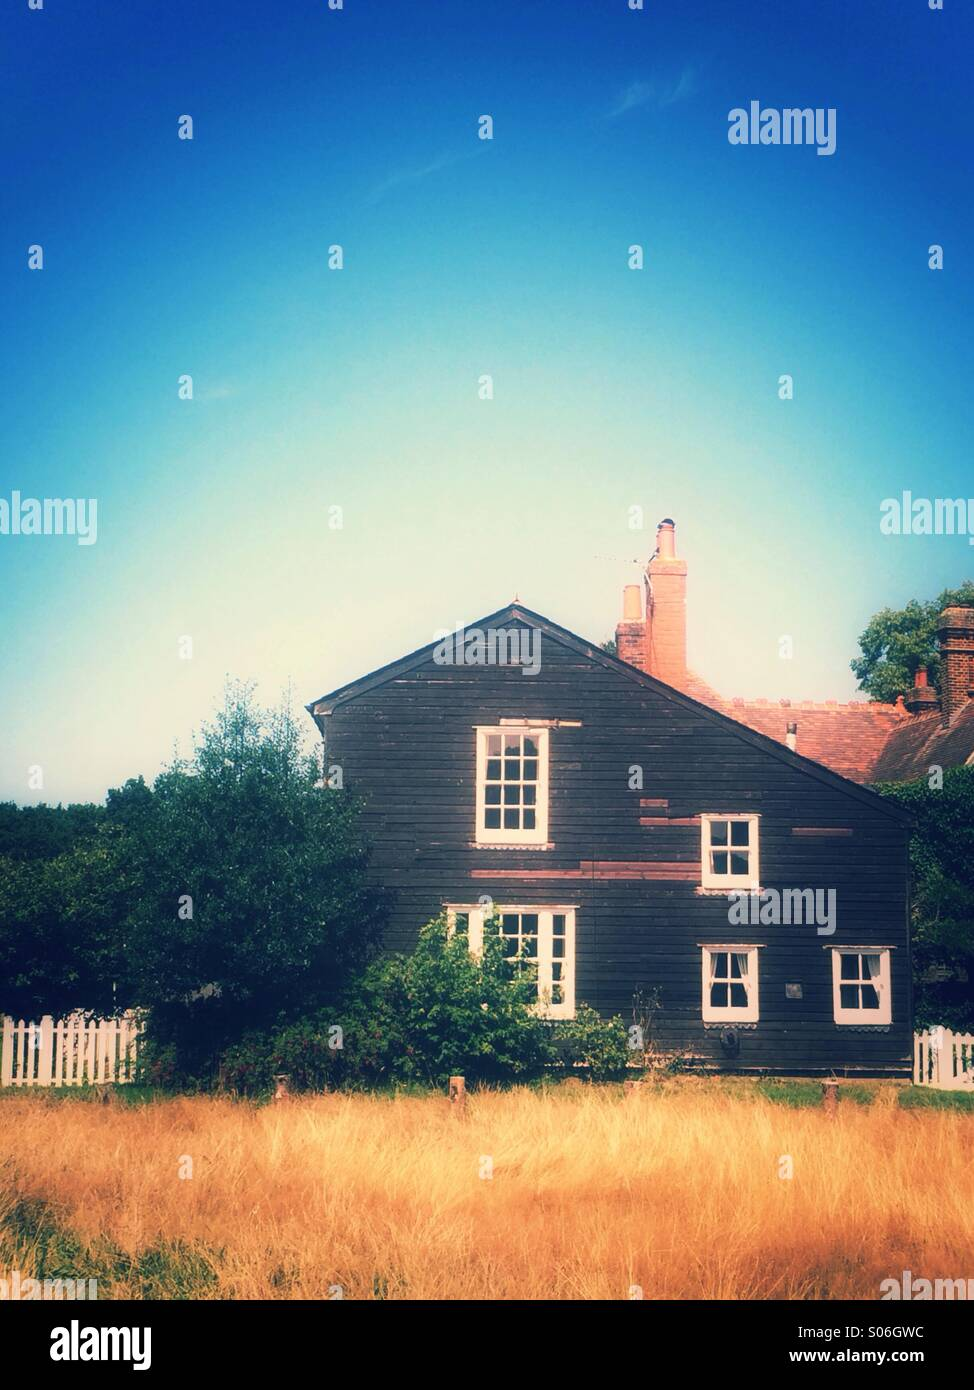 House in a field - Stock Image